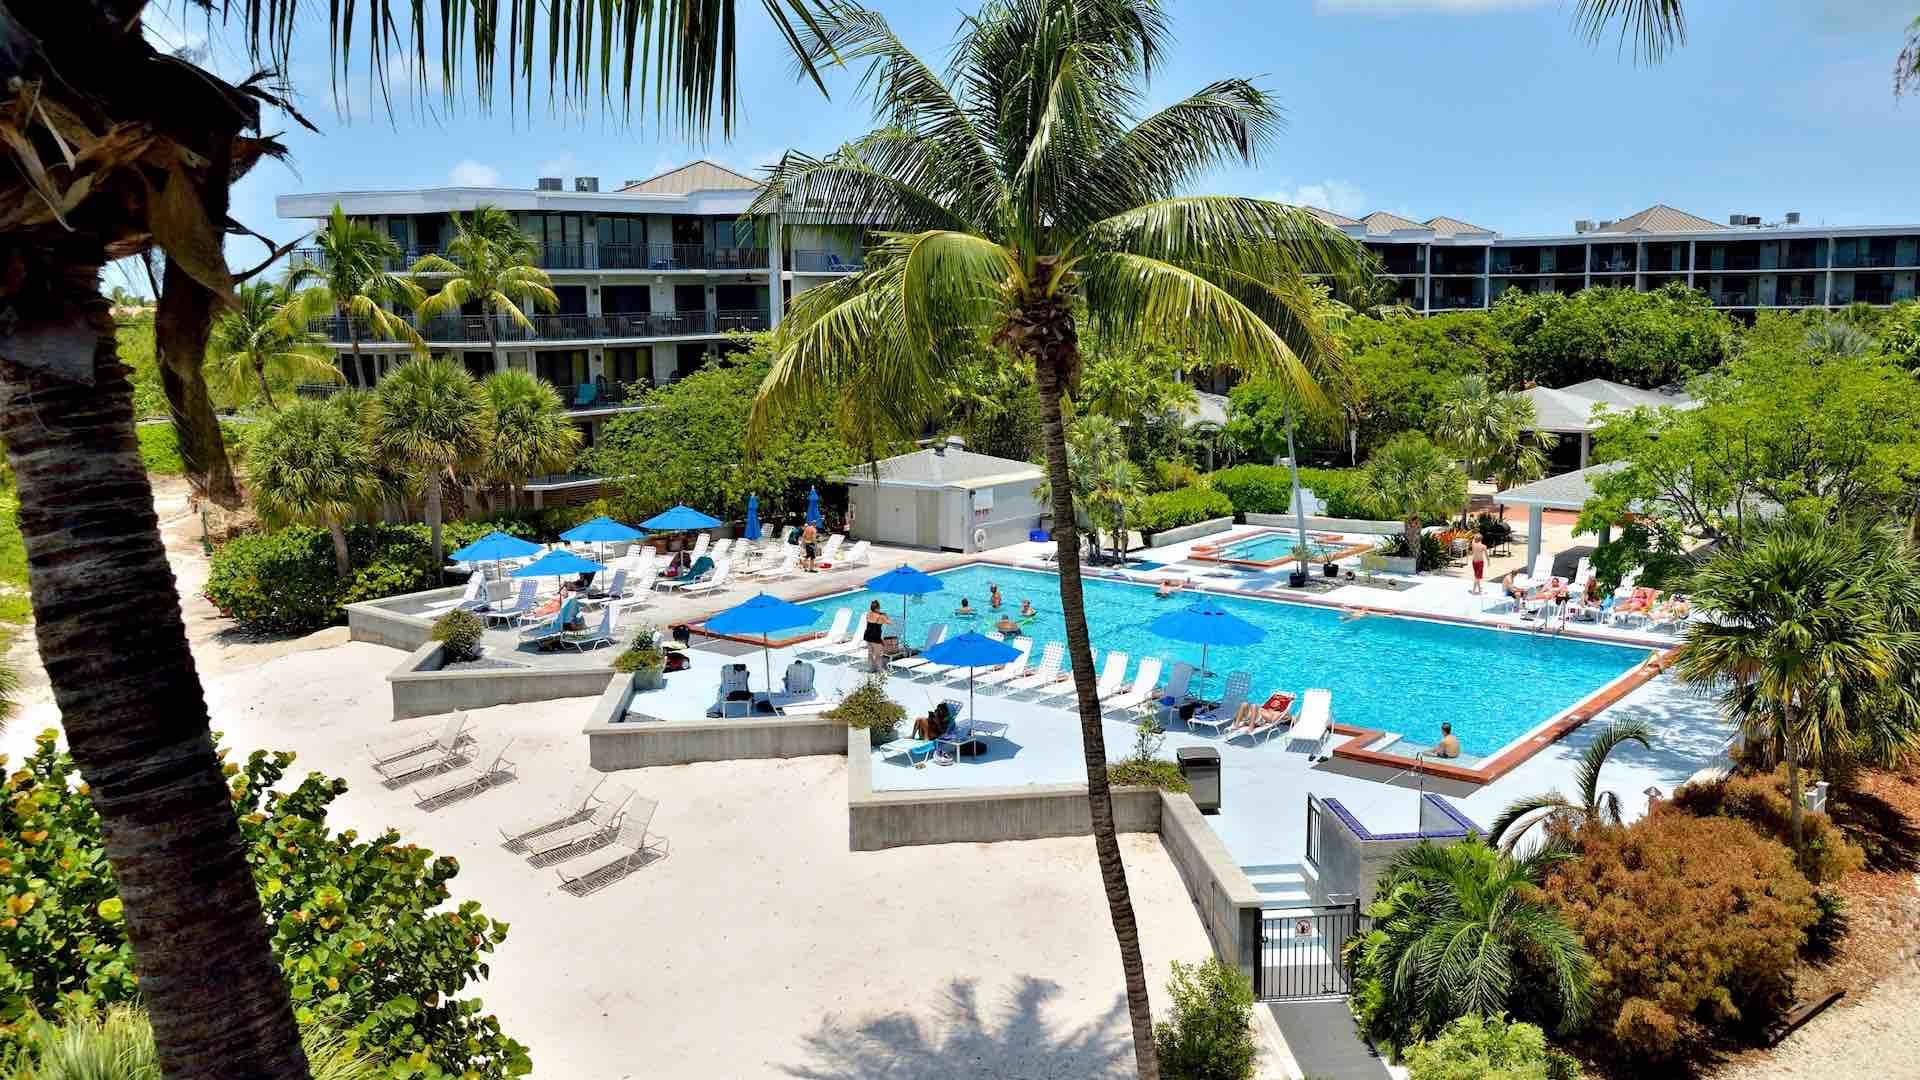 The community pool is one of the largest in Key West and is on the beach...